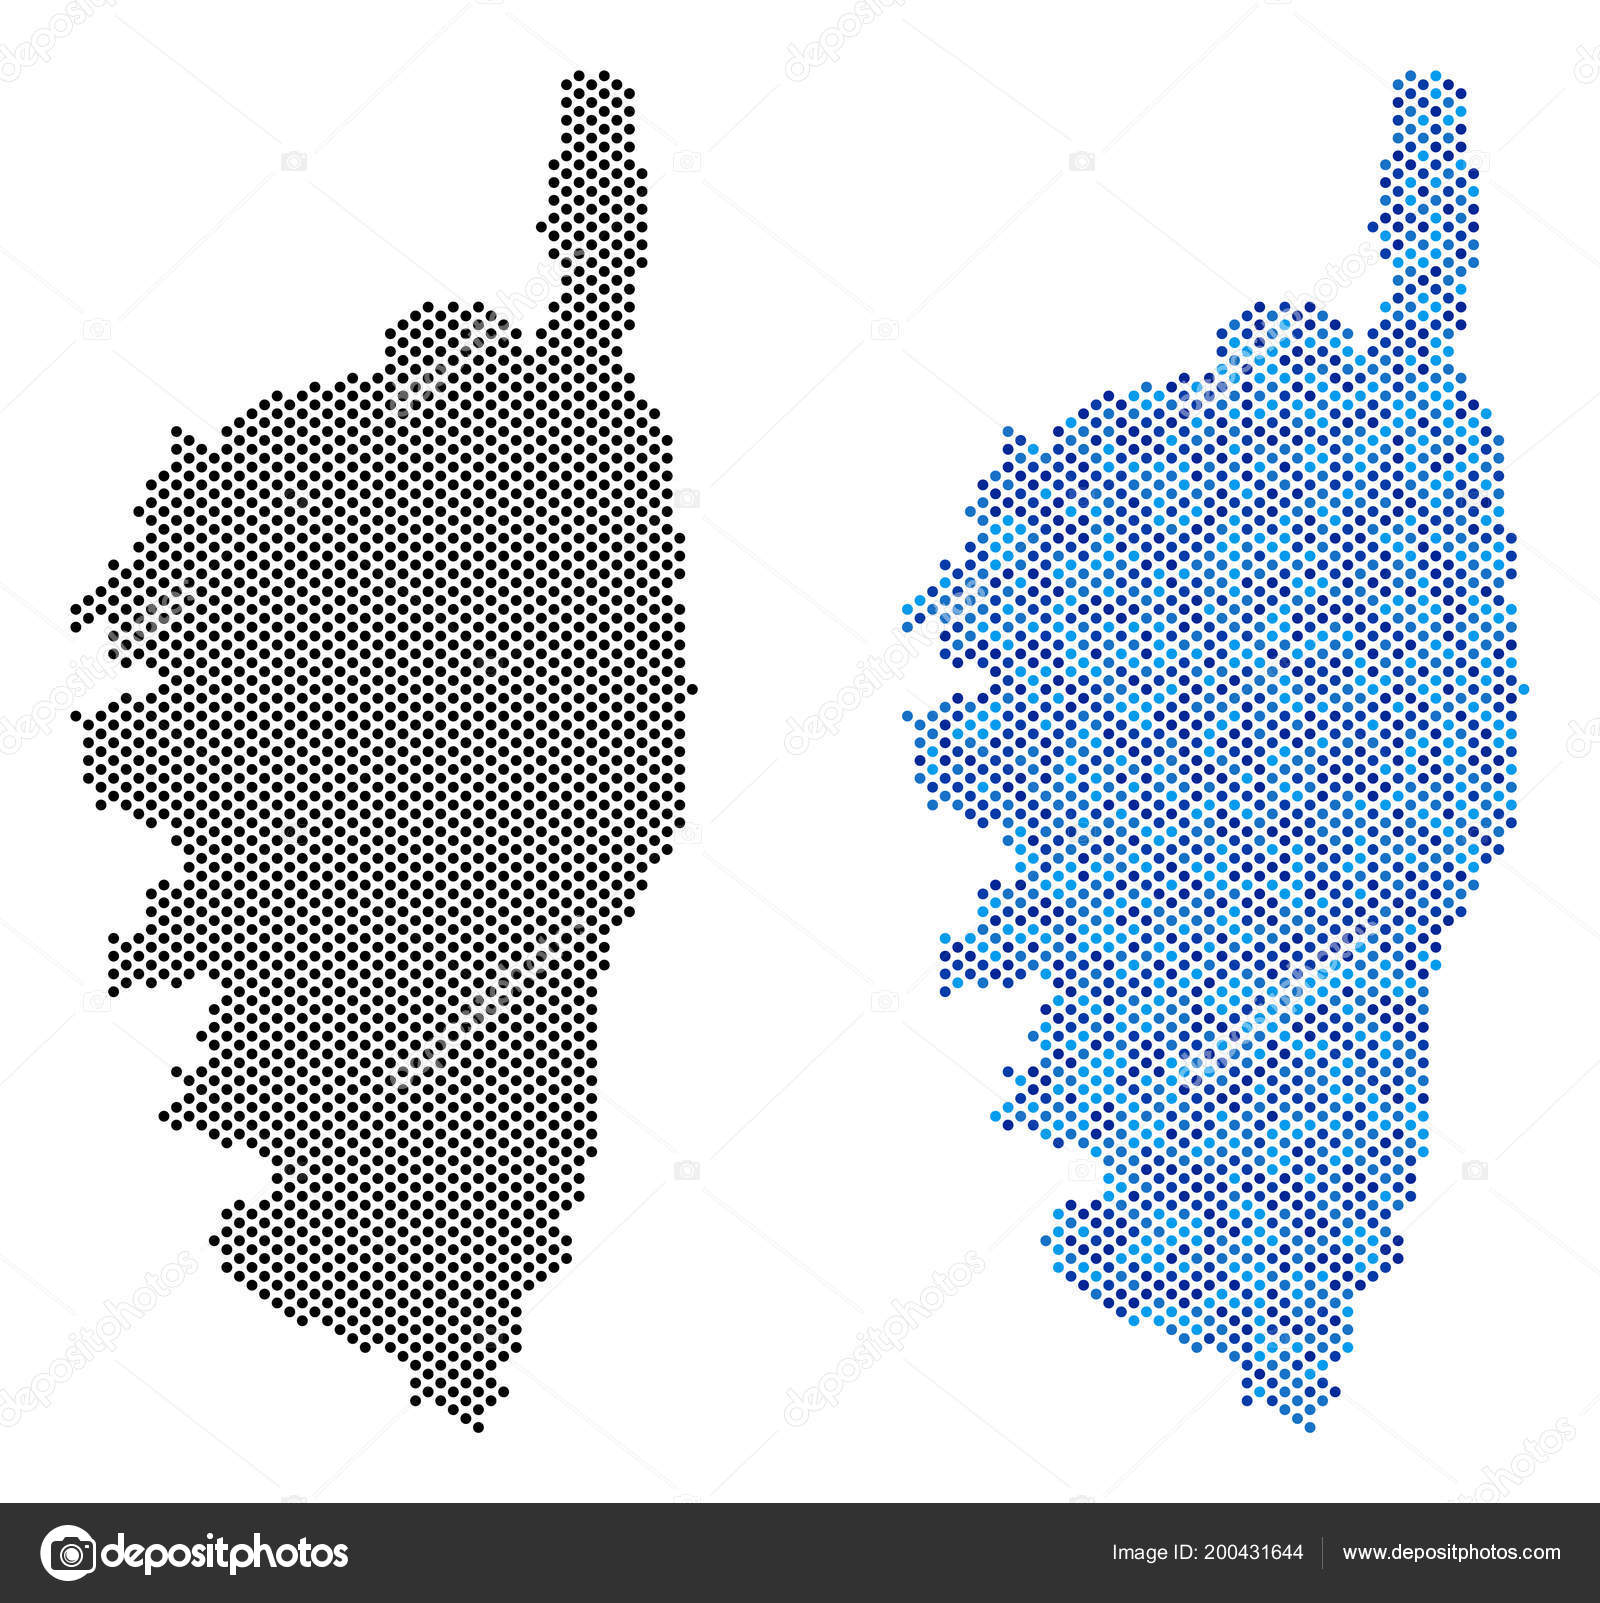 Map Of France And Corsica.Dot Corsica France Island Map Abstractions Stock Vector C Ahasoft